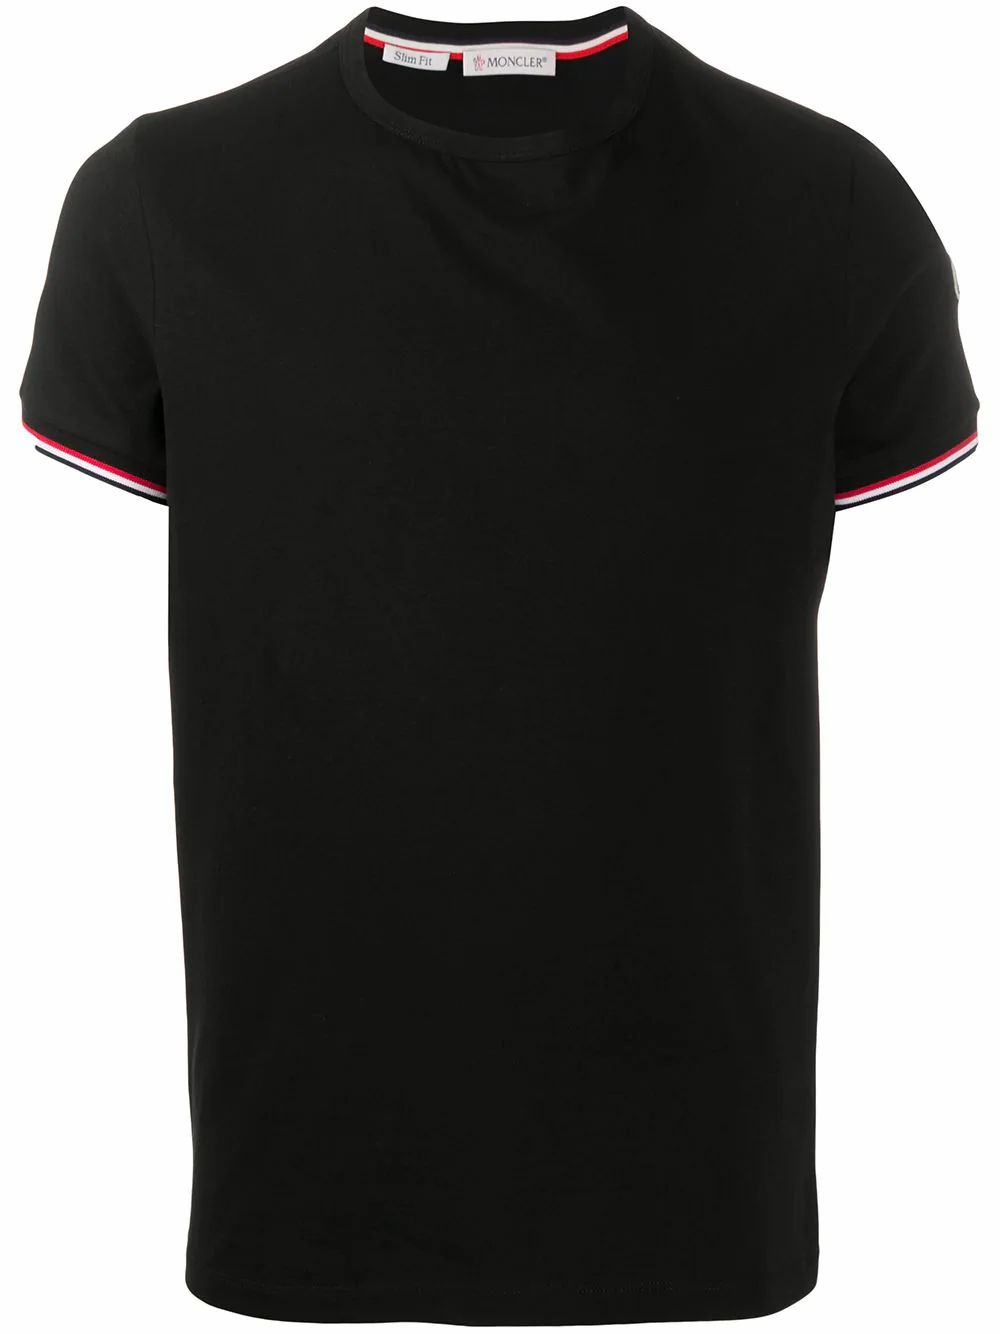 Moncler MONCLER MEN'S BLACK COTTON T-SHIRT